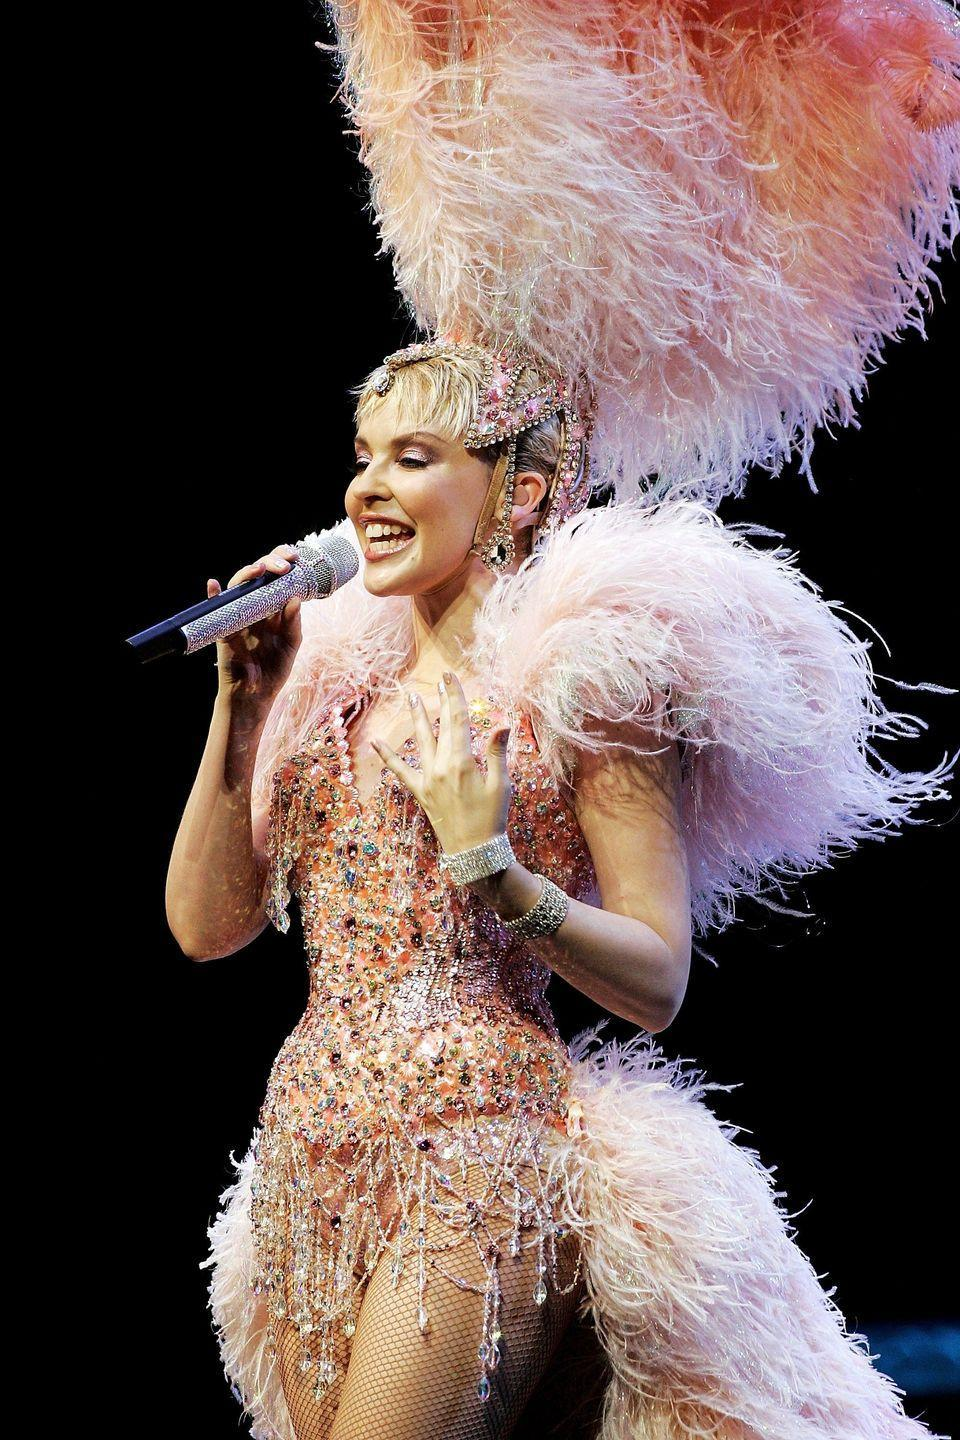 <p>On stage for the opening night of her Showgirl Homecoming tour in 2005.</p>